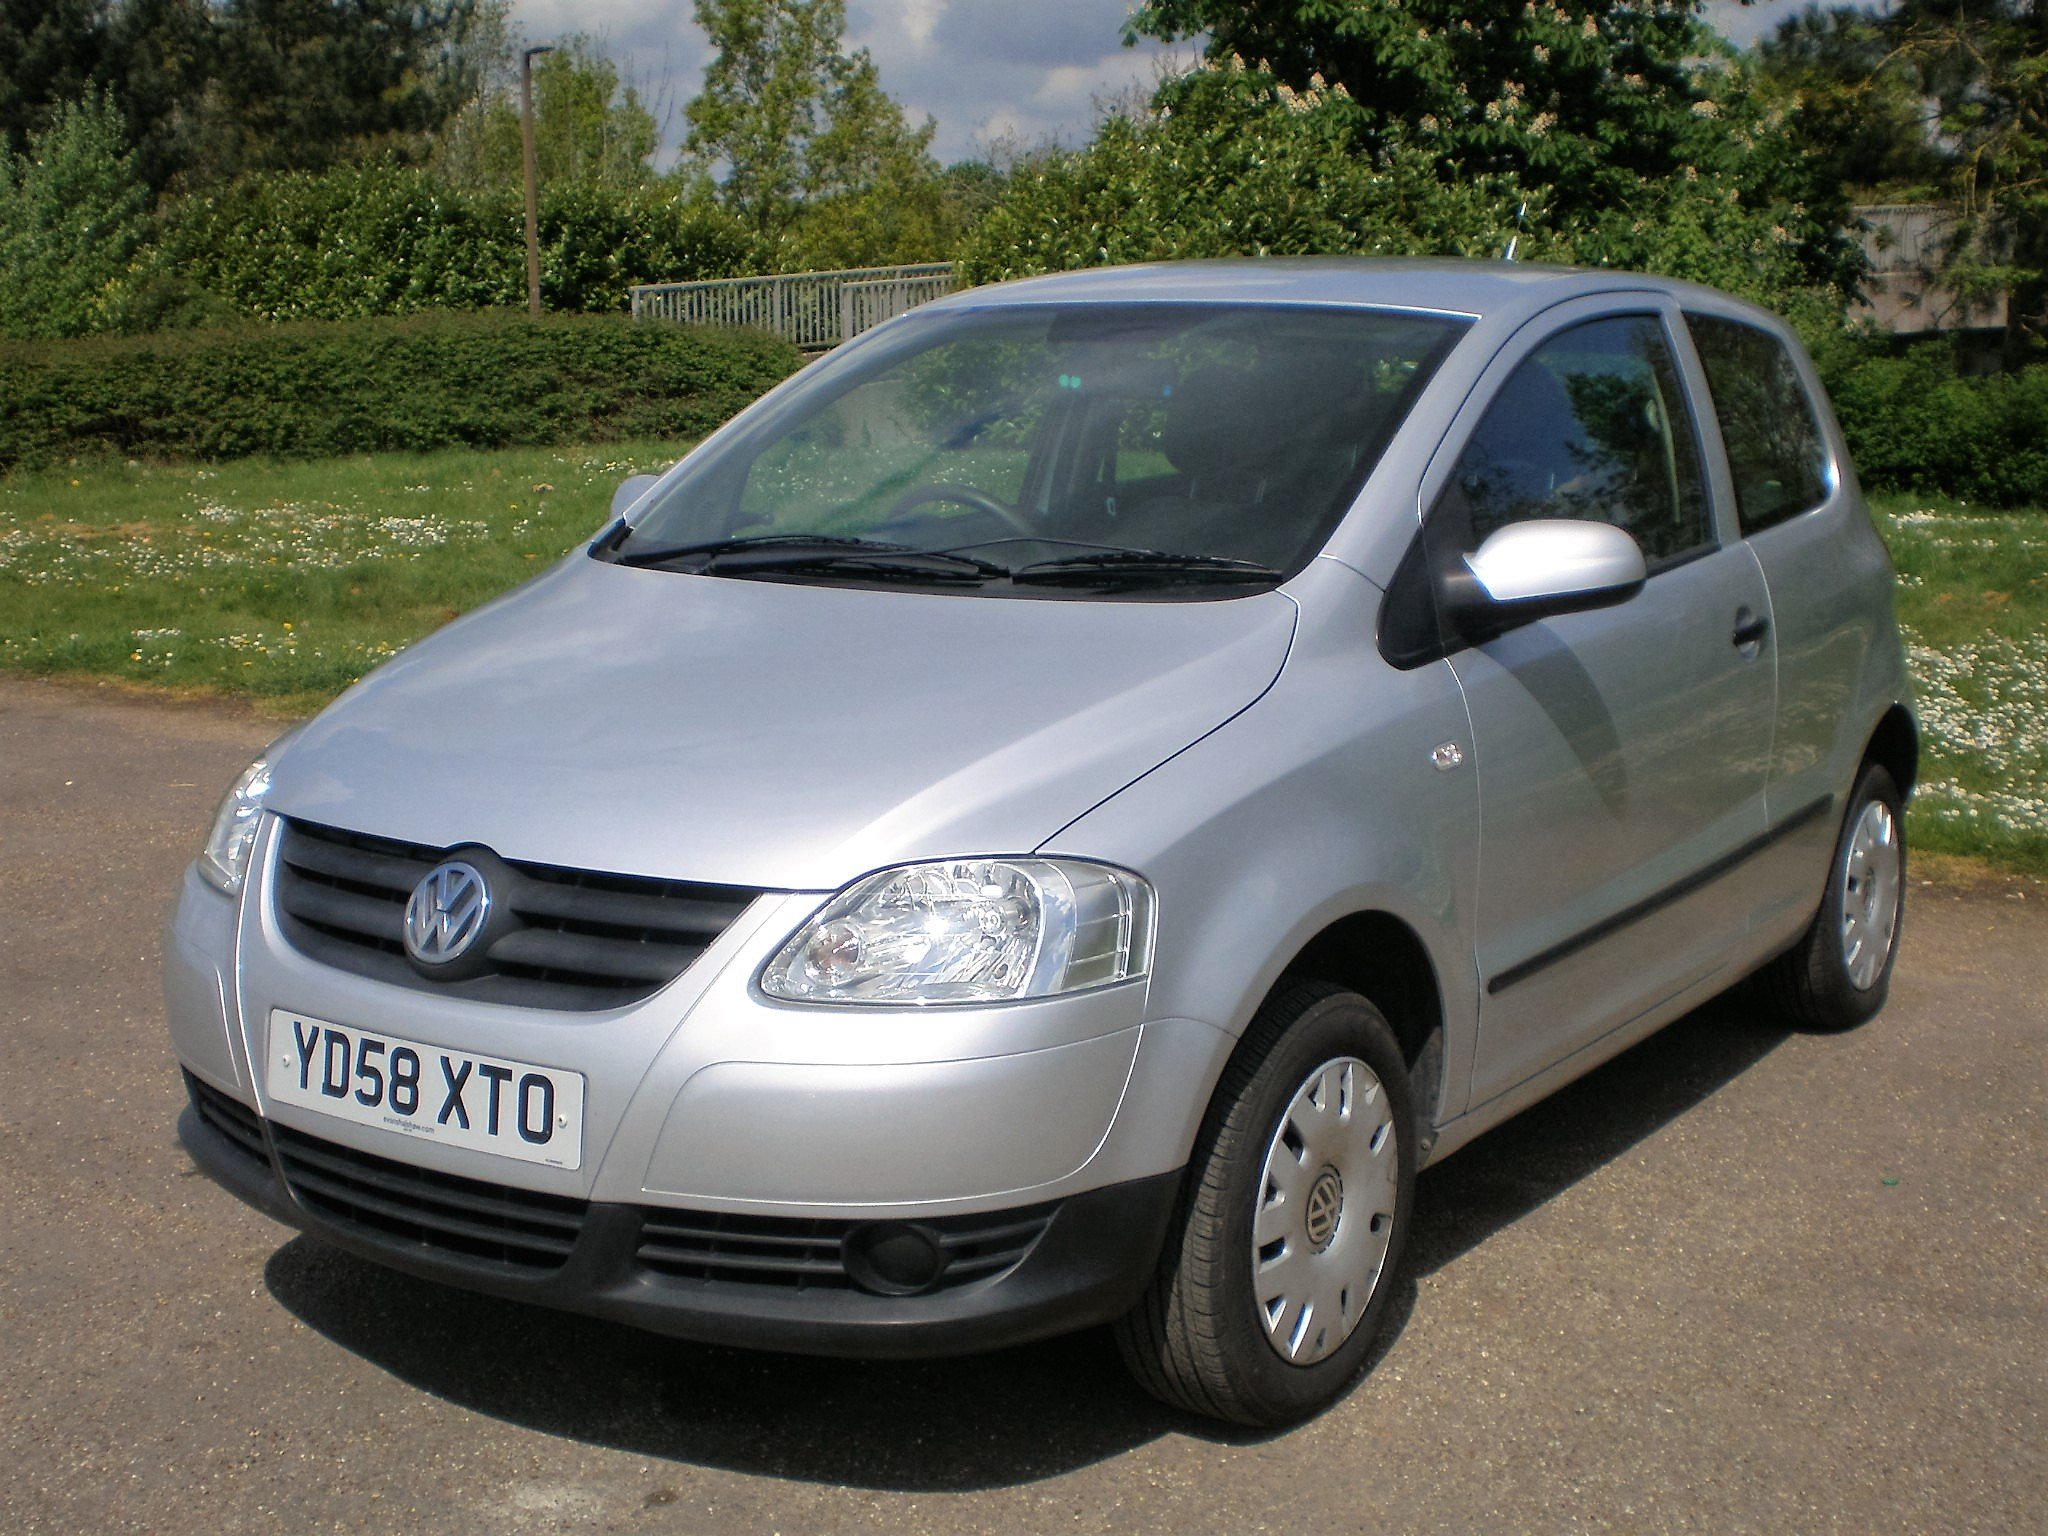 Small used cars from a Milton Keynes based car dealership